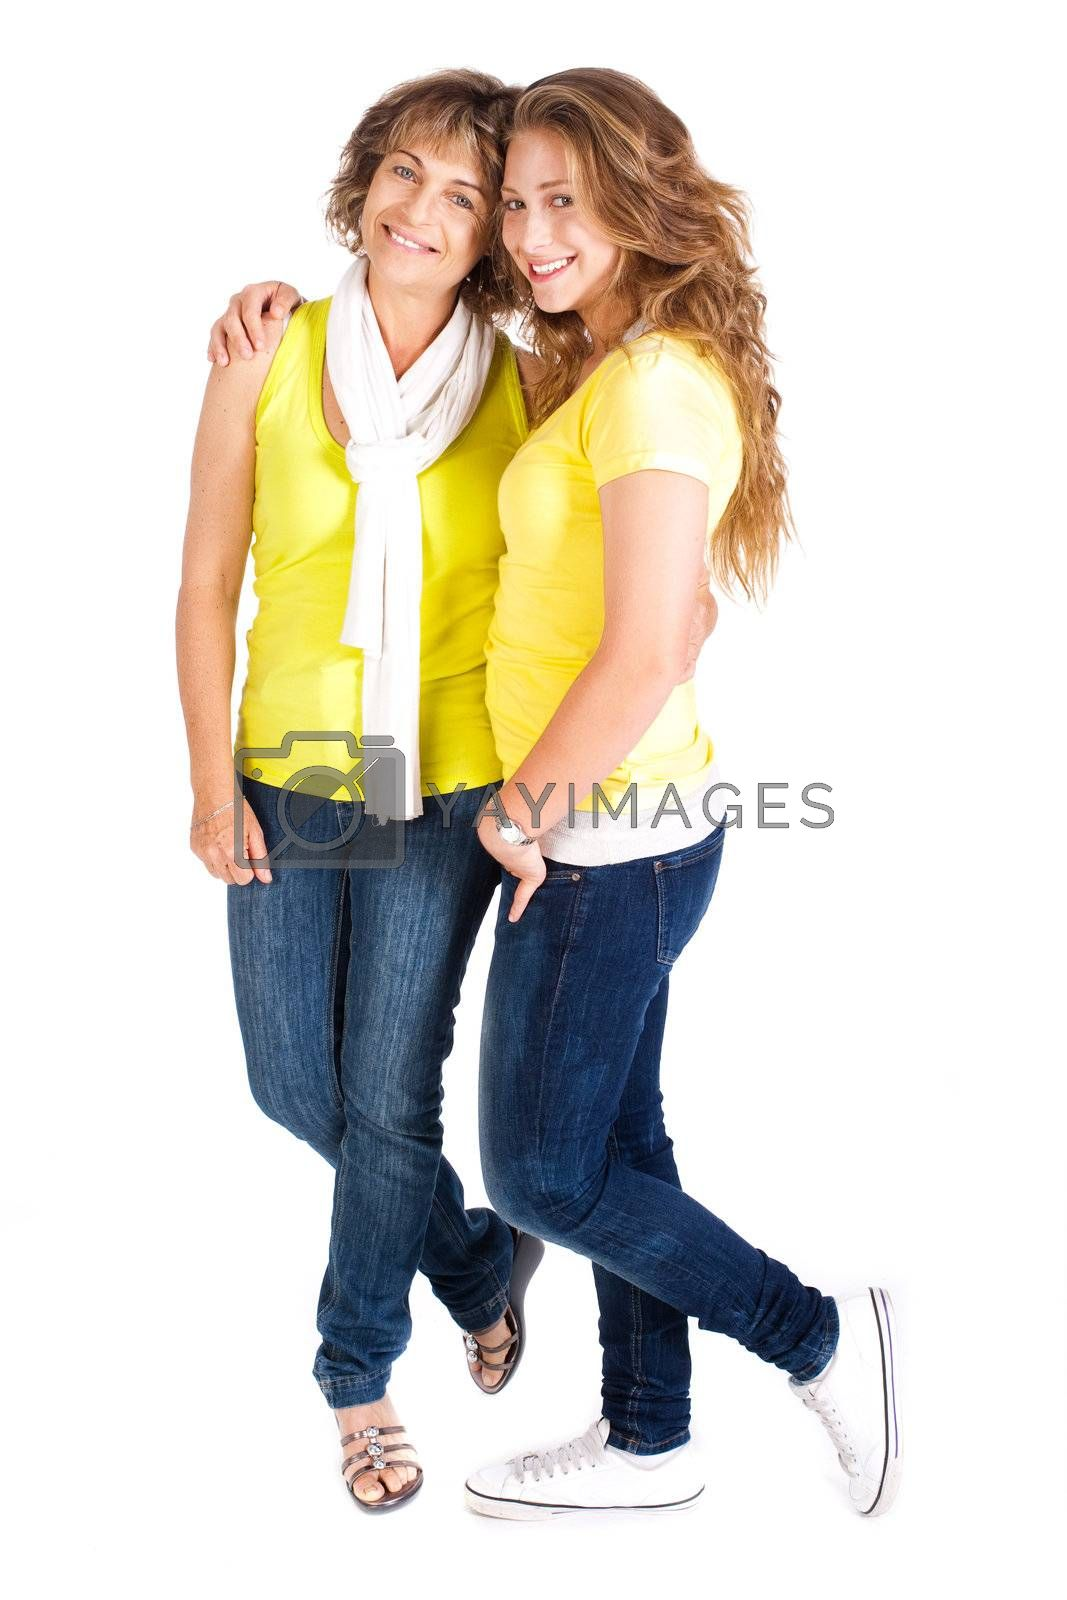 Young pretty daughter embracing her mum, indoors isolated on white background.